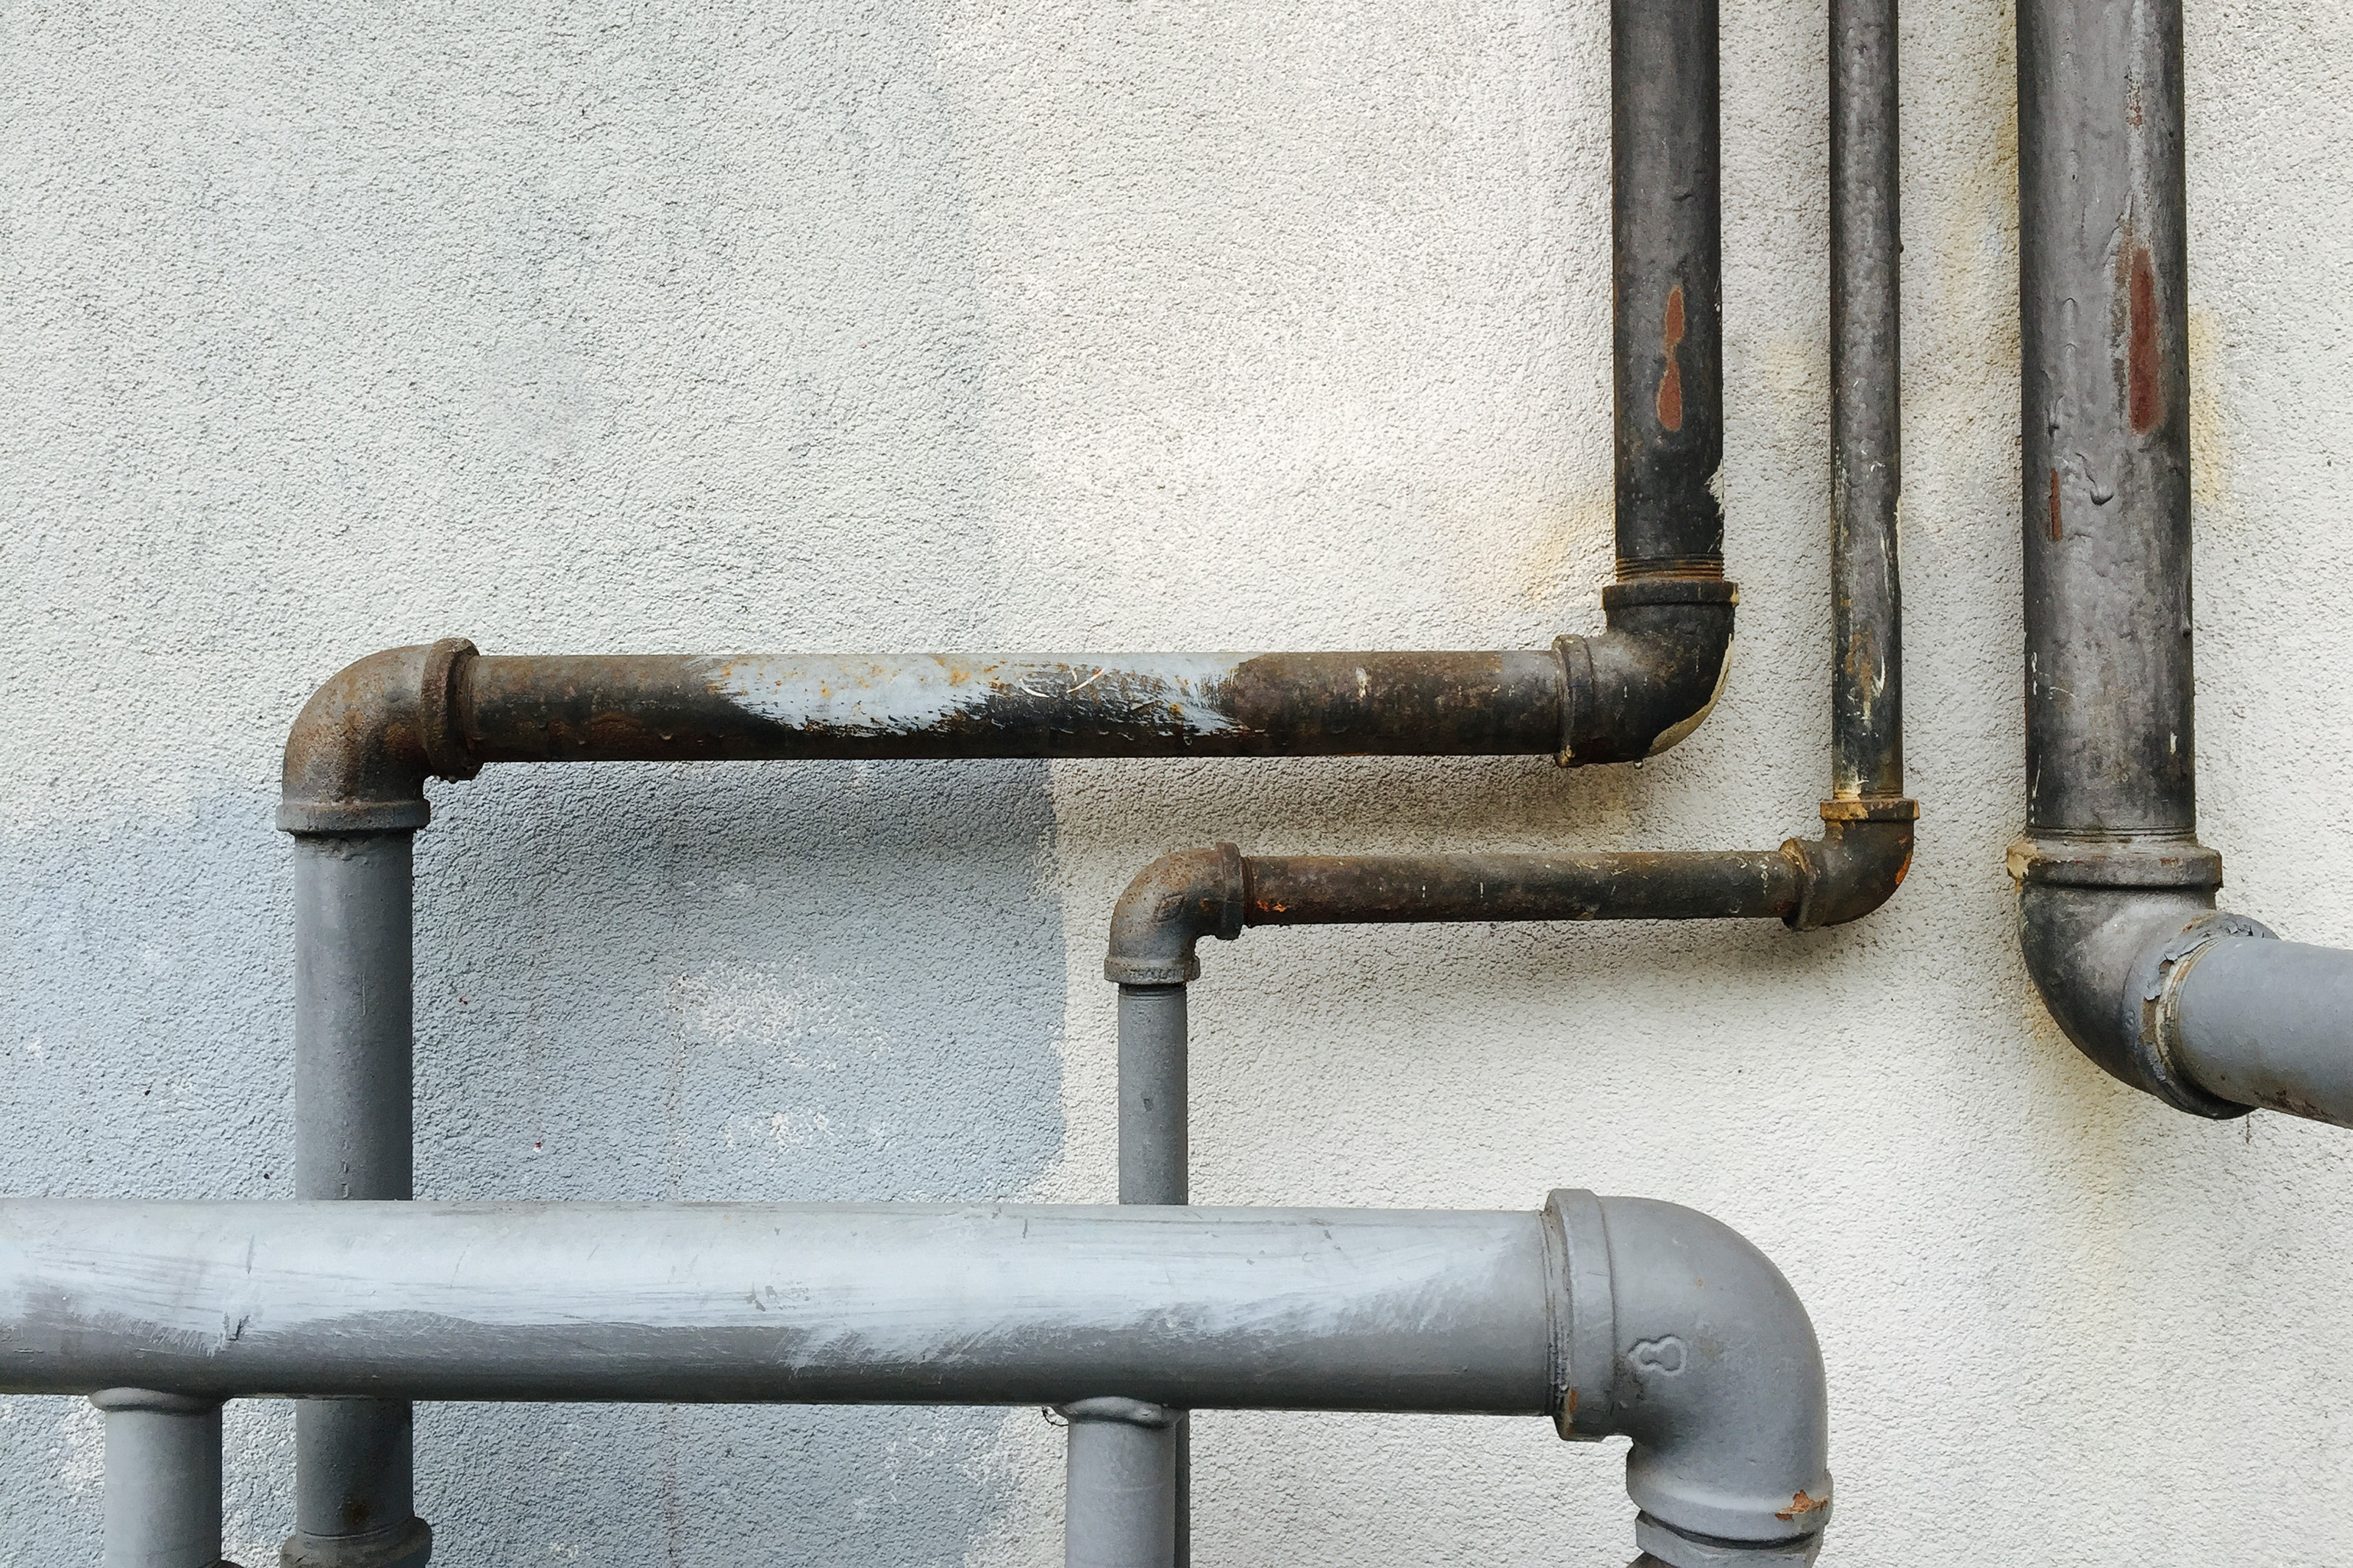 Pipes running through a home